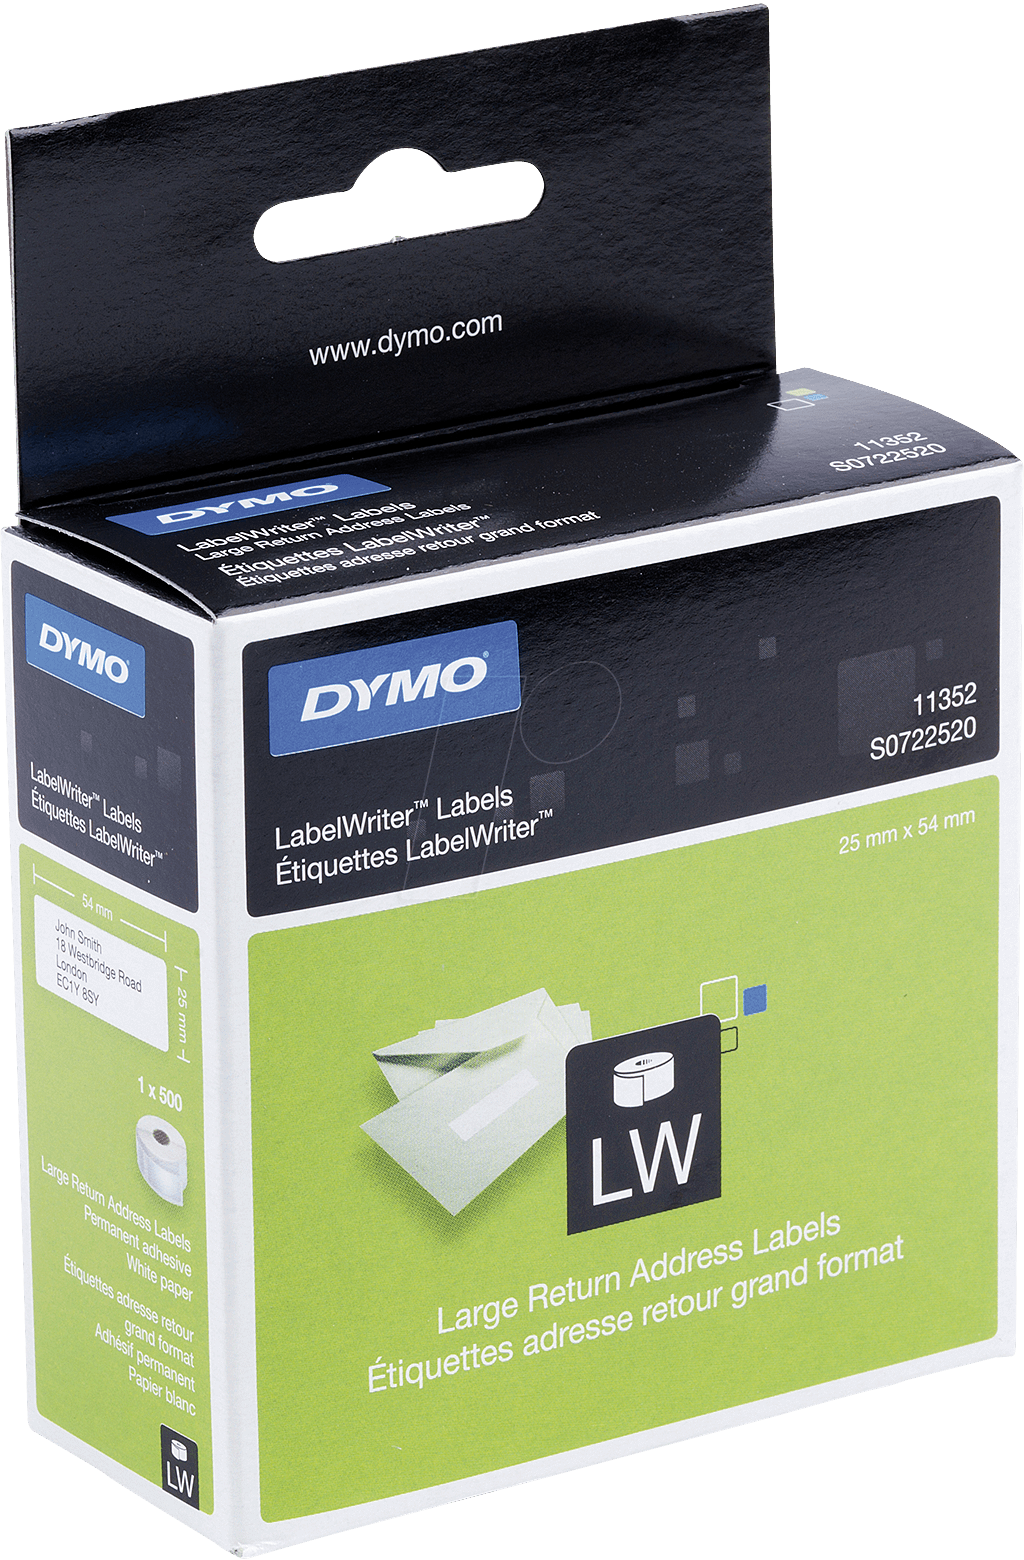 Dymo lw 11352 dymo labels for labelwriter 25 x 54 mm at for Dymo label stickers